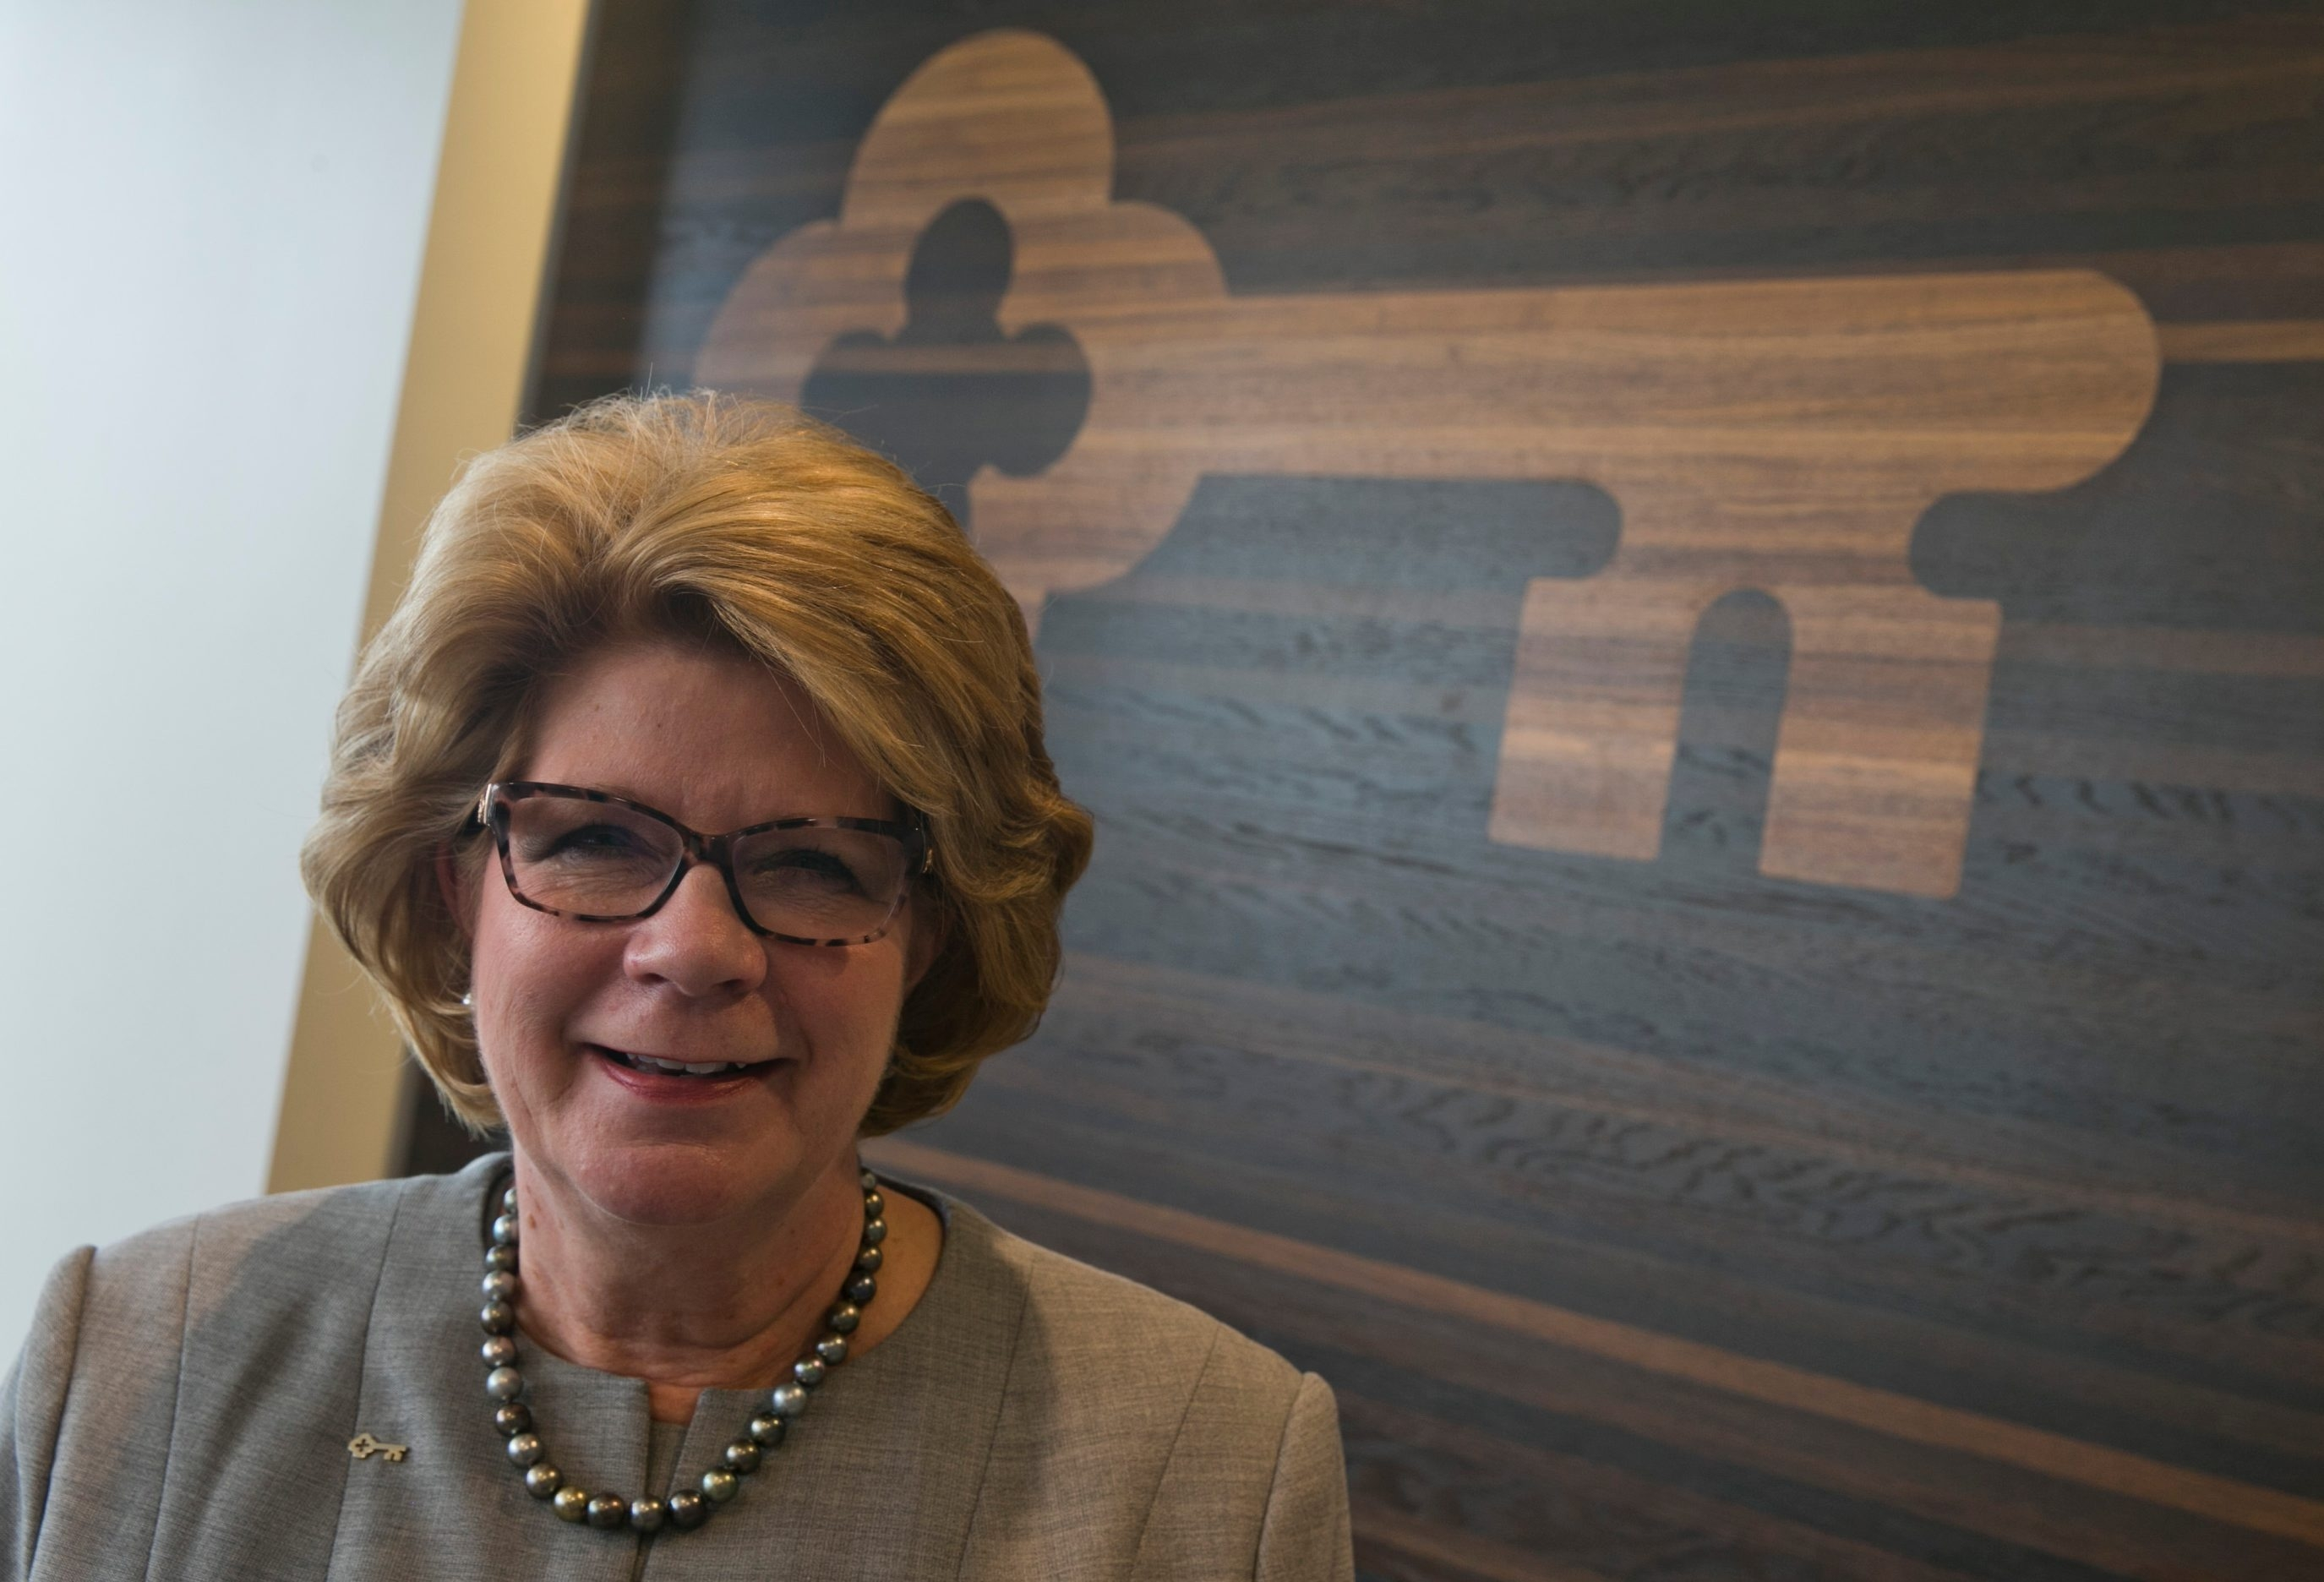 Beth Mooney, chairman and CEO of KeyCorp